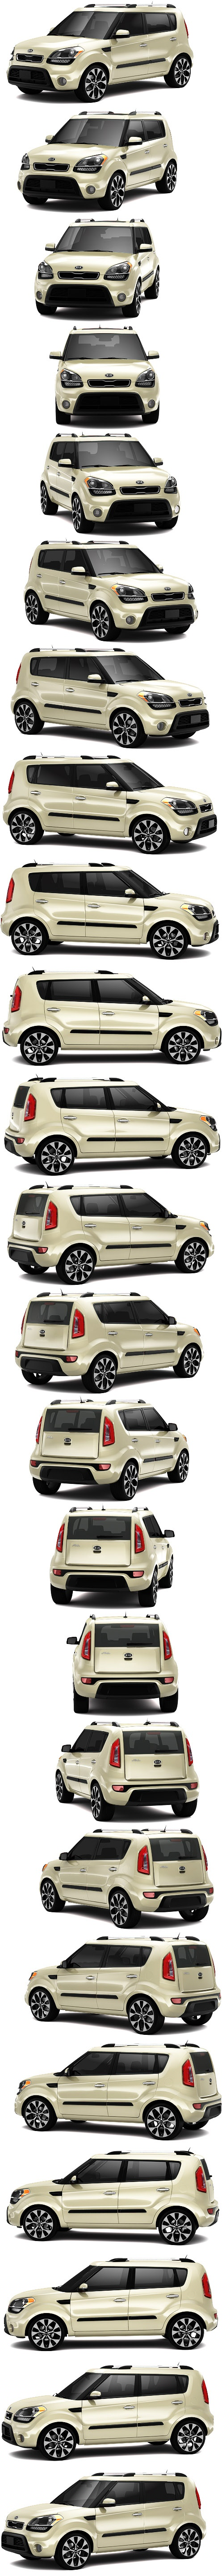 Kia Soul 6 speed manual tranny and vanilla milk shake colour!